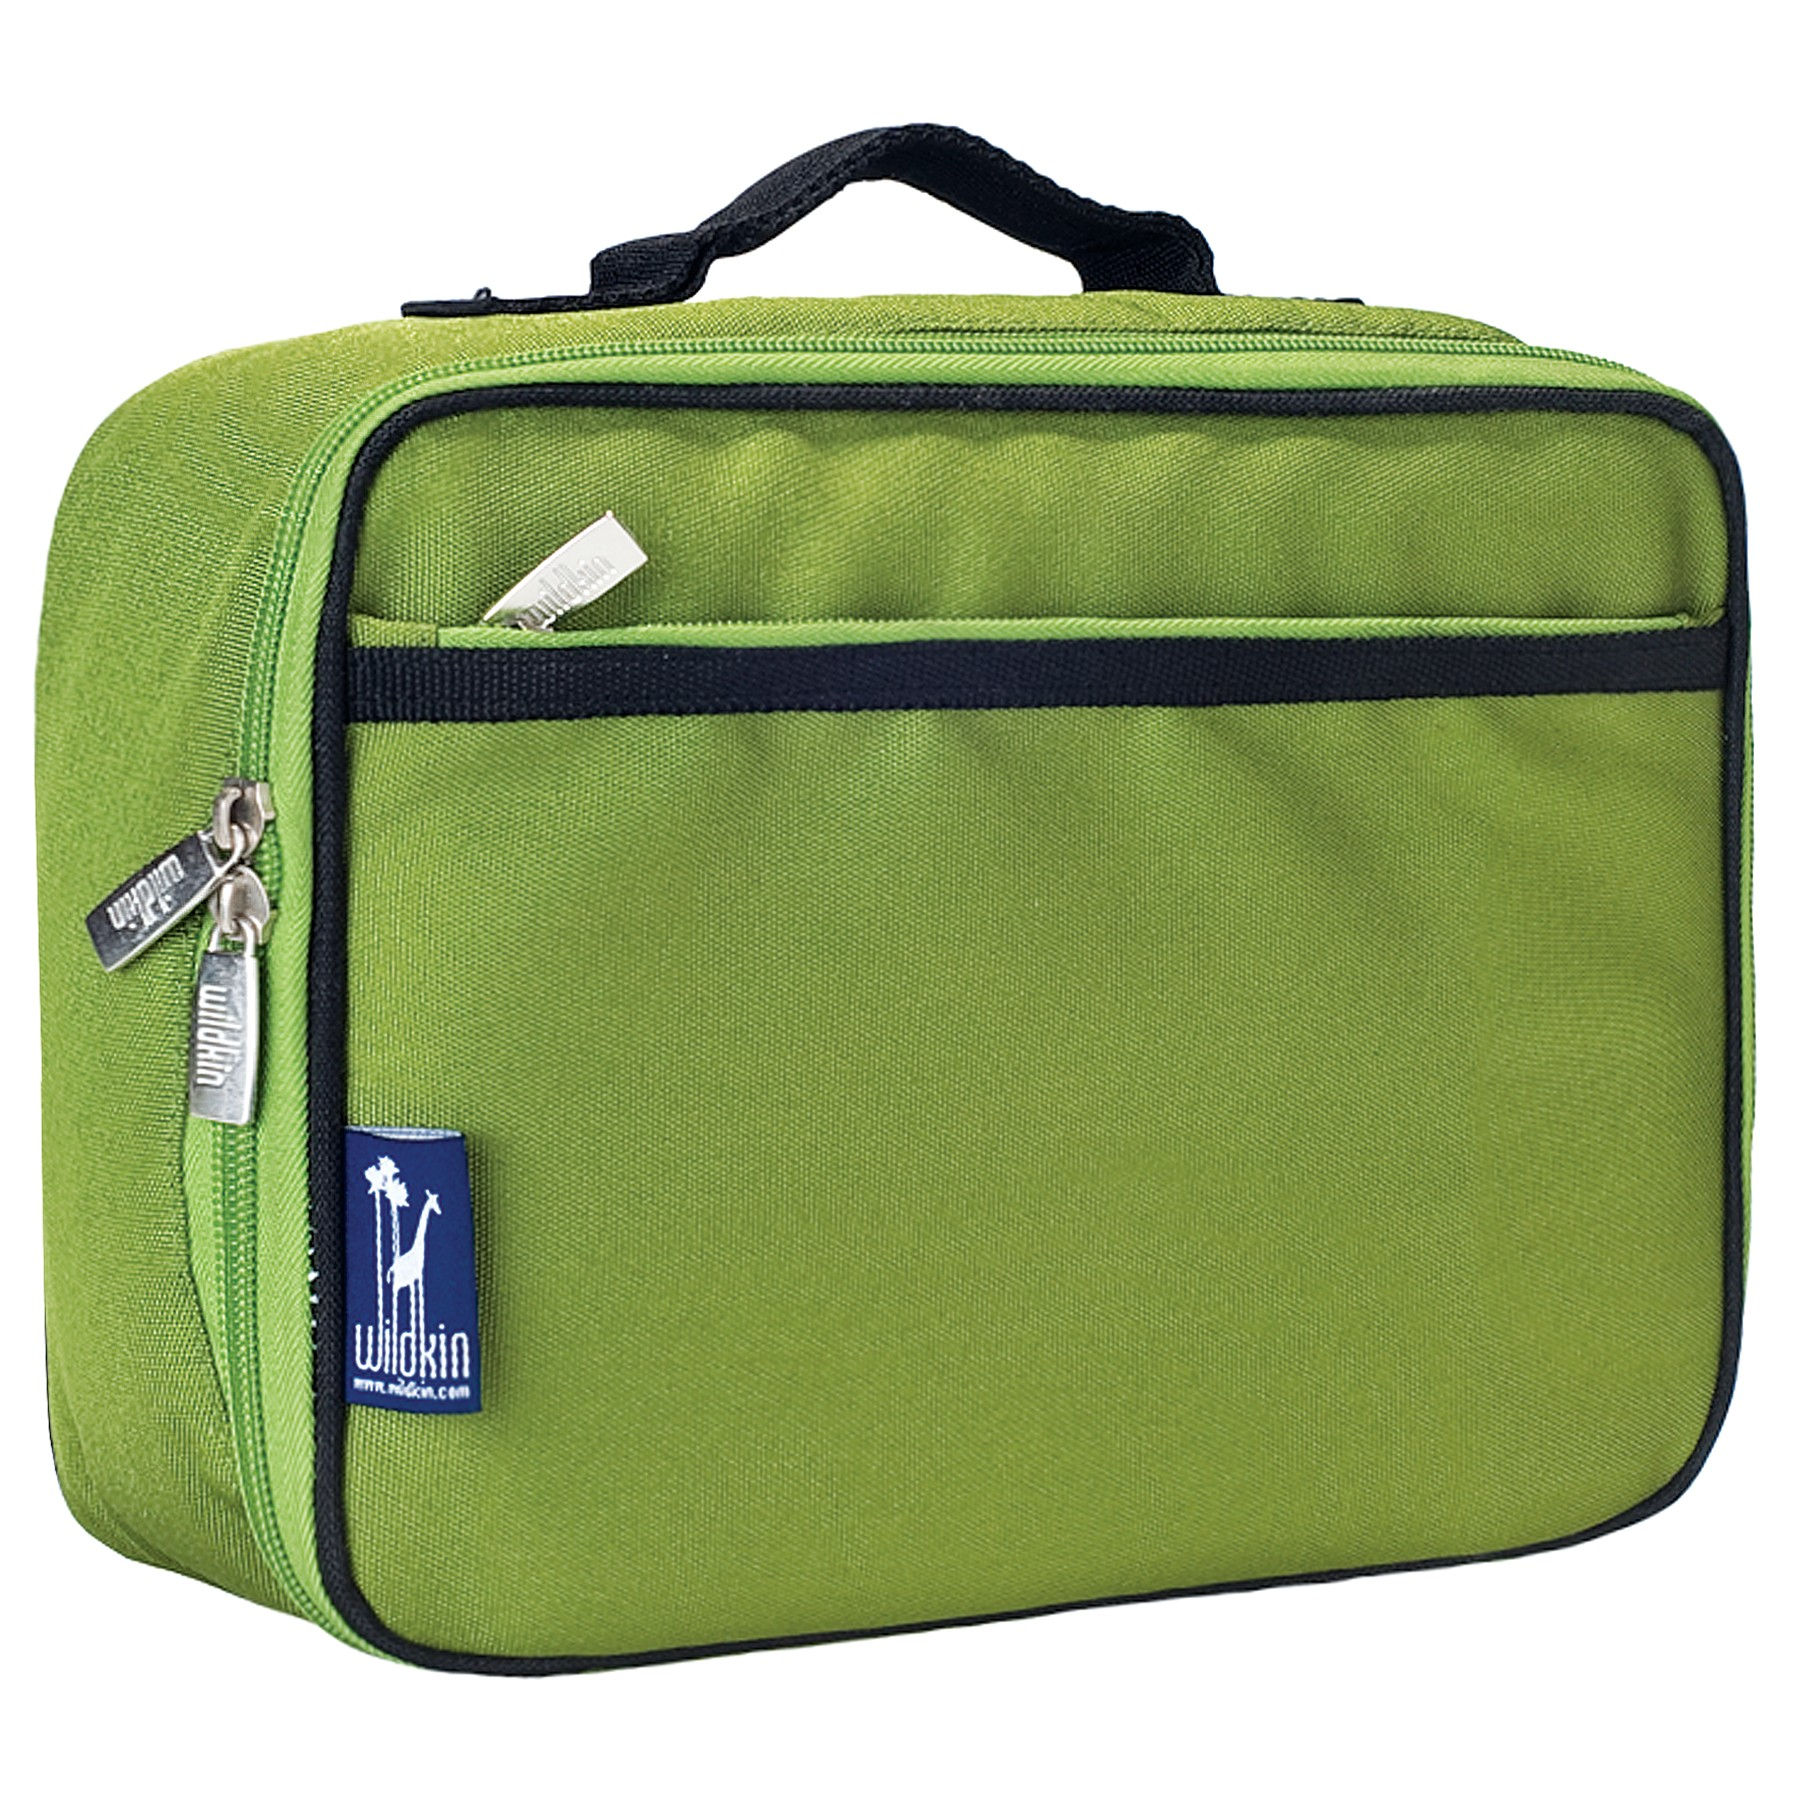 Parrot Green Lunch Box